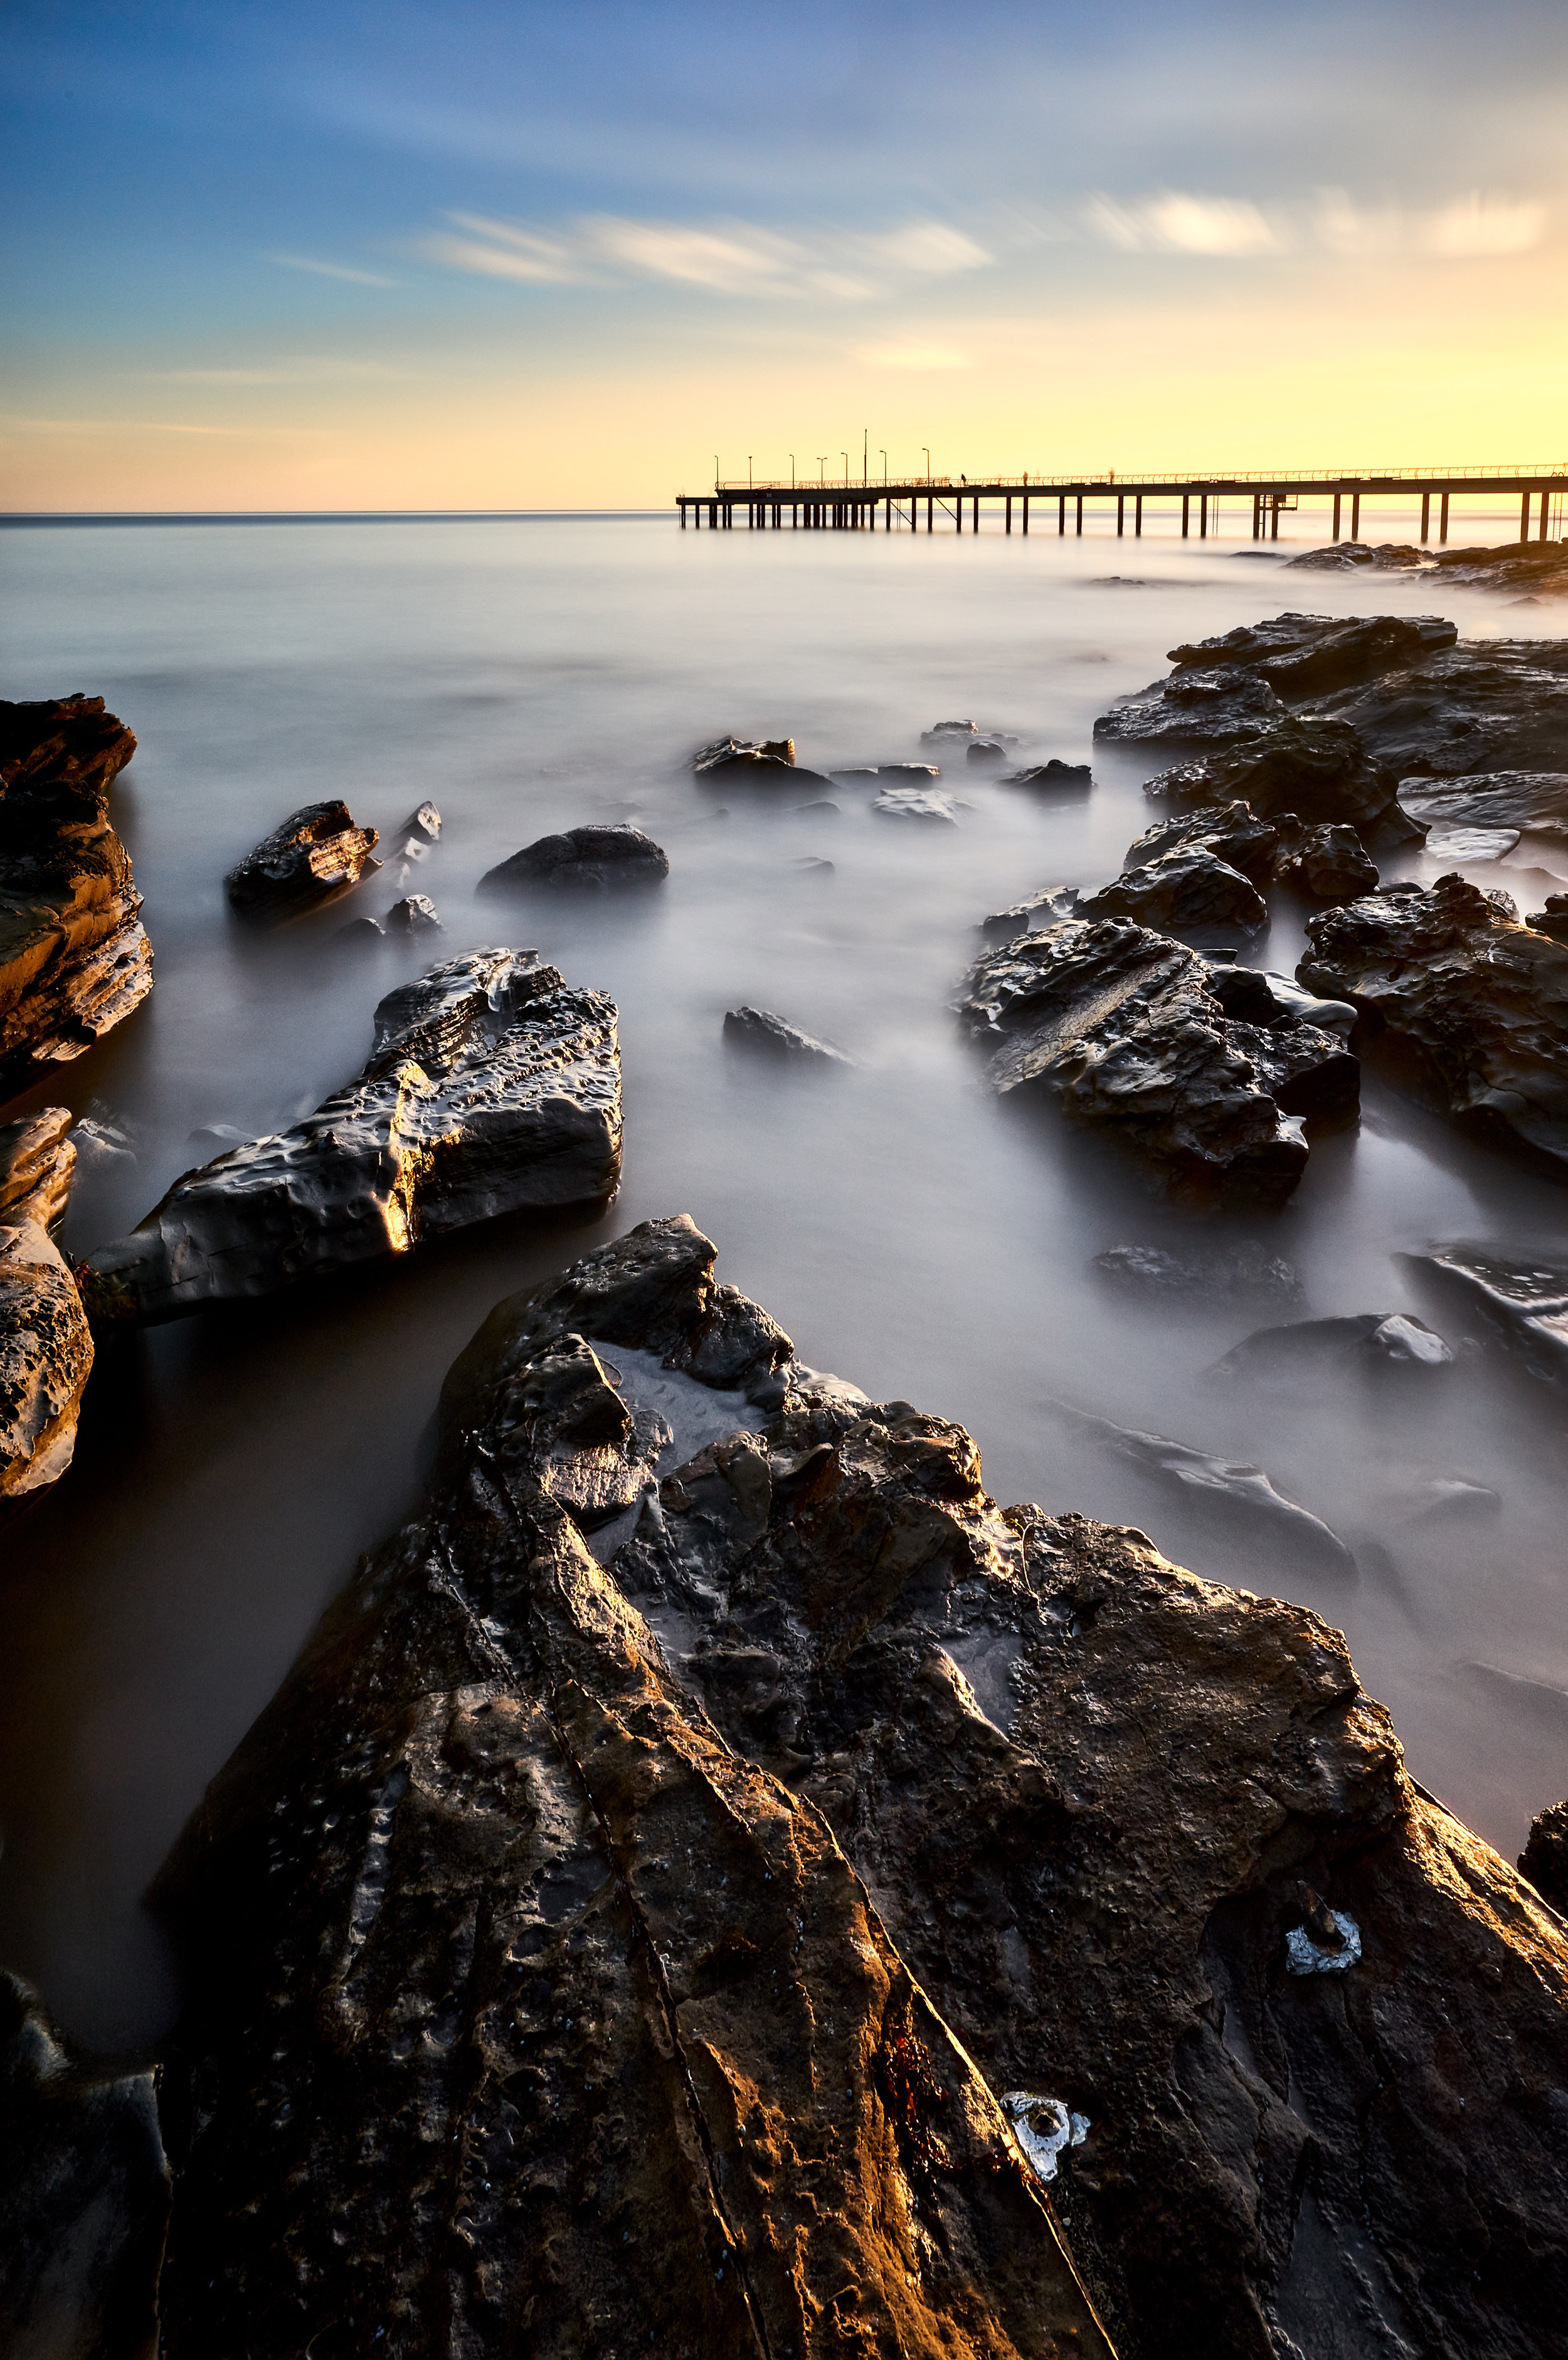 Rocks @ Lorne Pier | Feeling the warm sun slowly push away the chill of an early morning, and watching as it lit the edge of the stones in gold, was almost a spiritual experience, made more profound by the softness of the ocean in the final image.